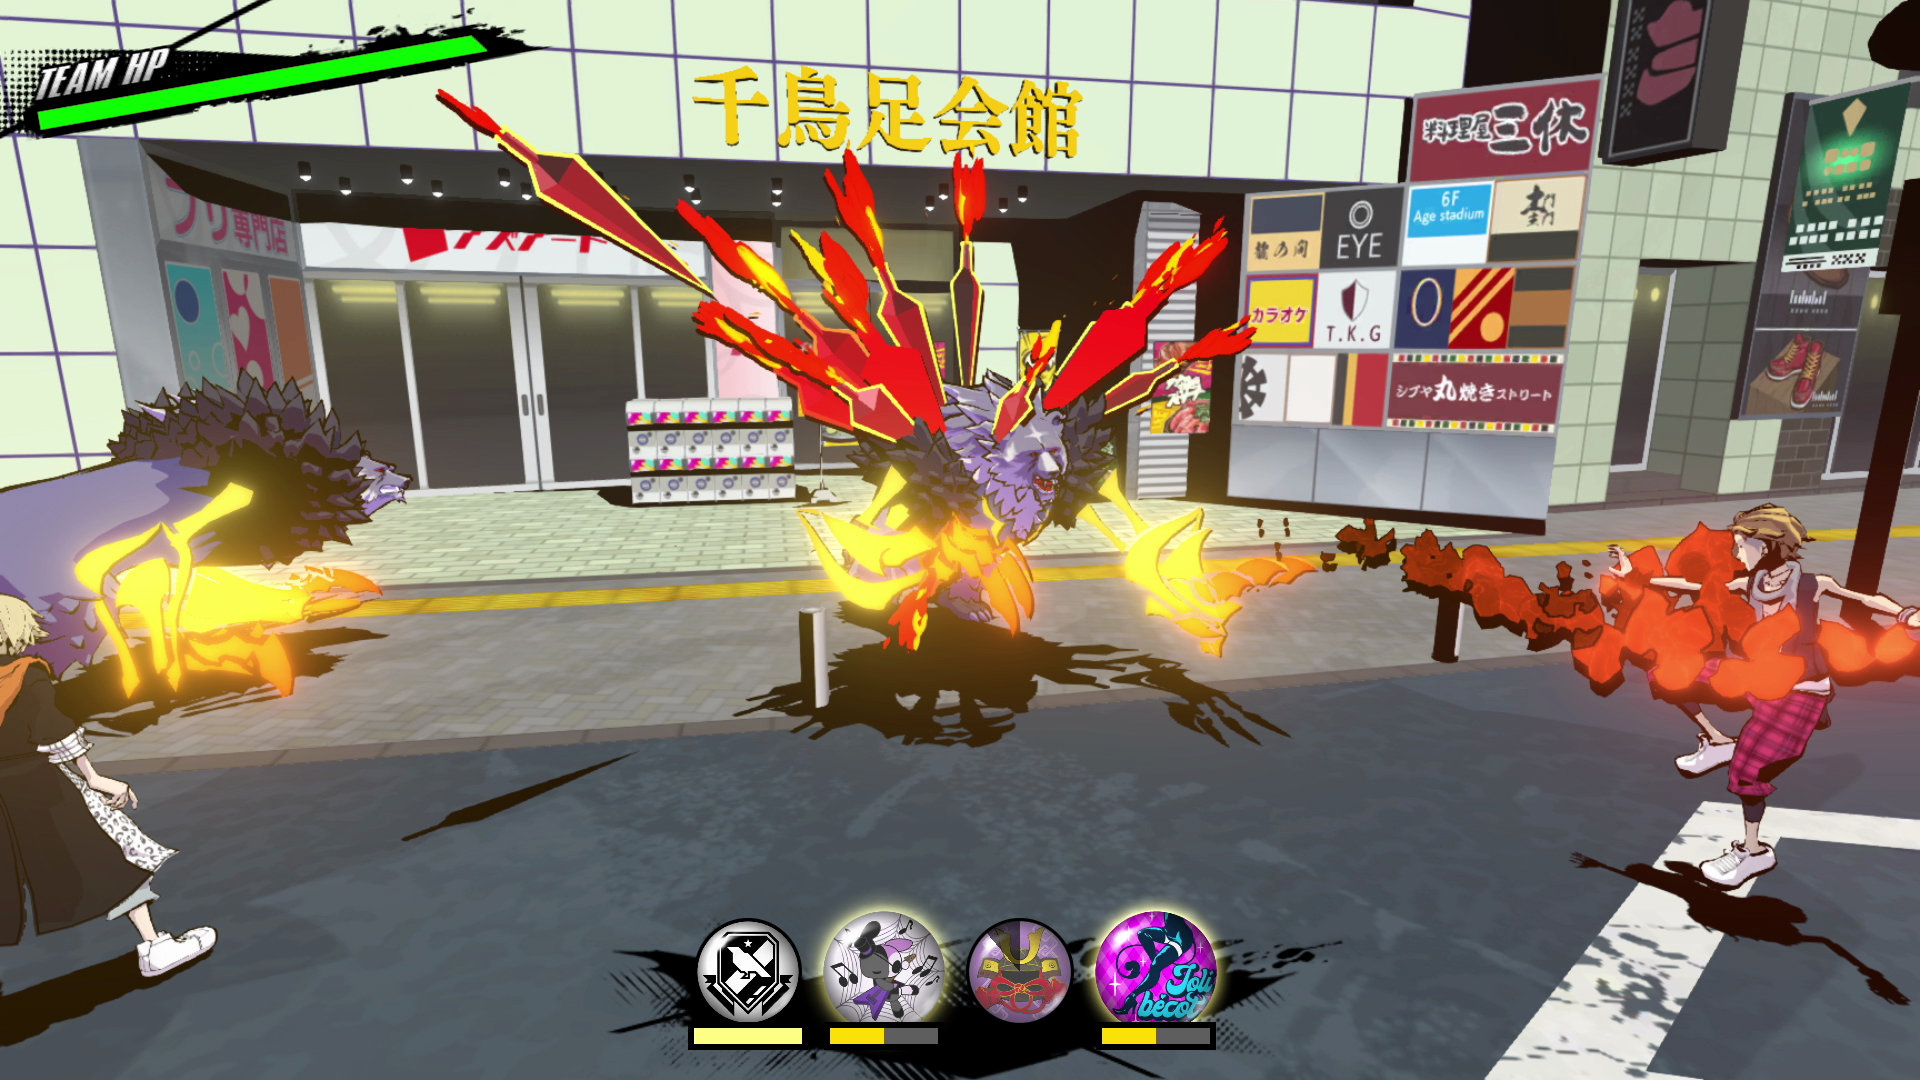 Fret attacks with his Classical Cacophony Dynamite Darts in Neo: The World Ends WIth You.